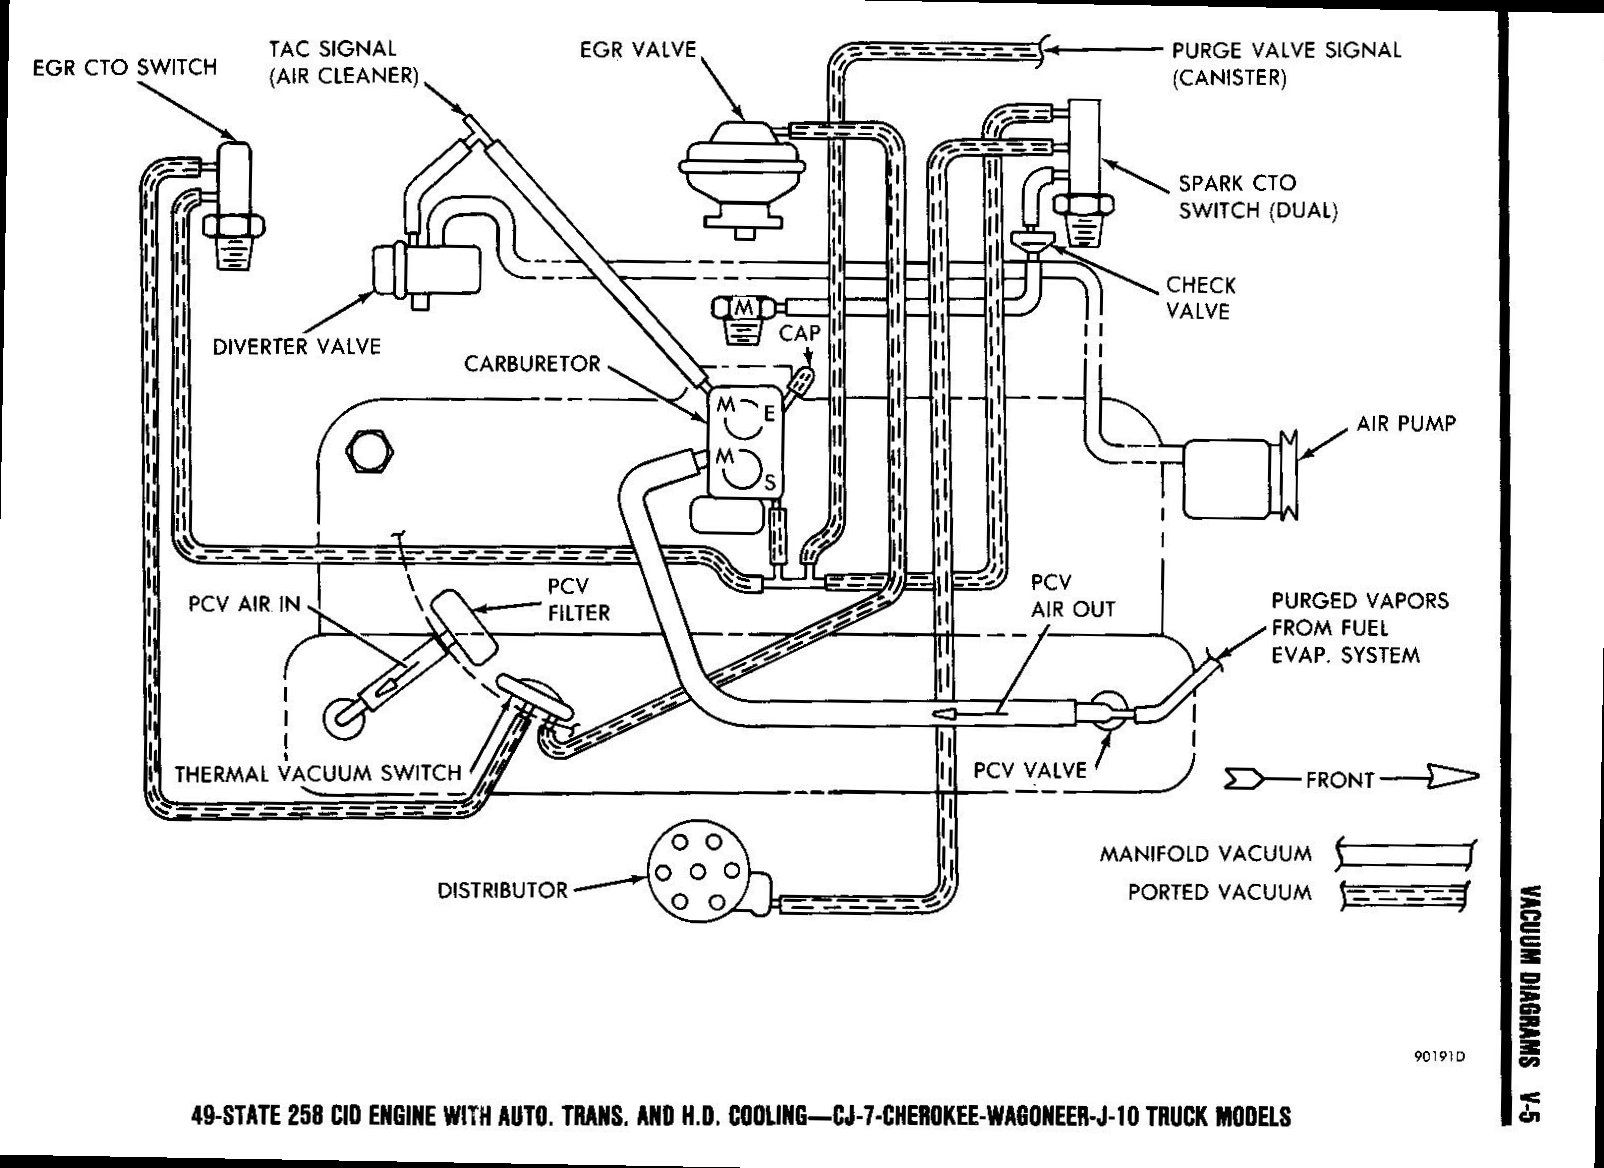 medium resolution of jeep cj5 engine diagram wiring diagram list 1985 jeep cj7 engine wiring diagram jeep cj5 4